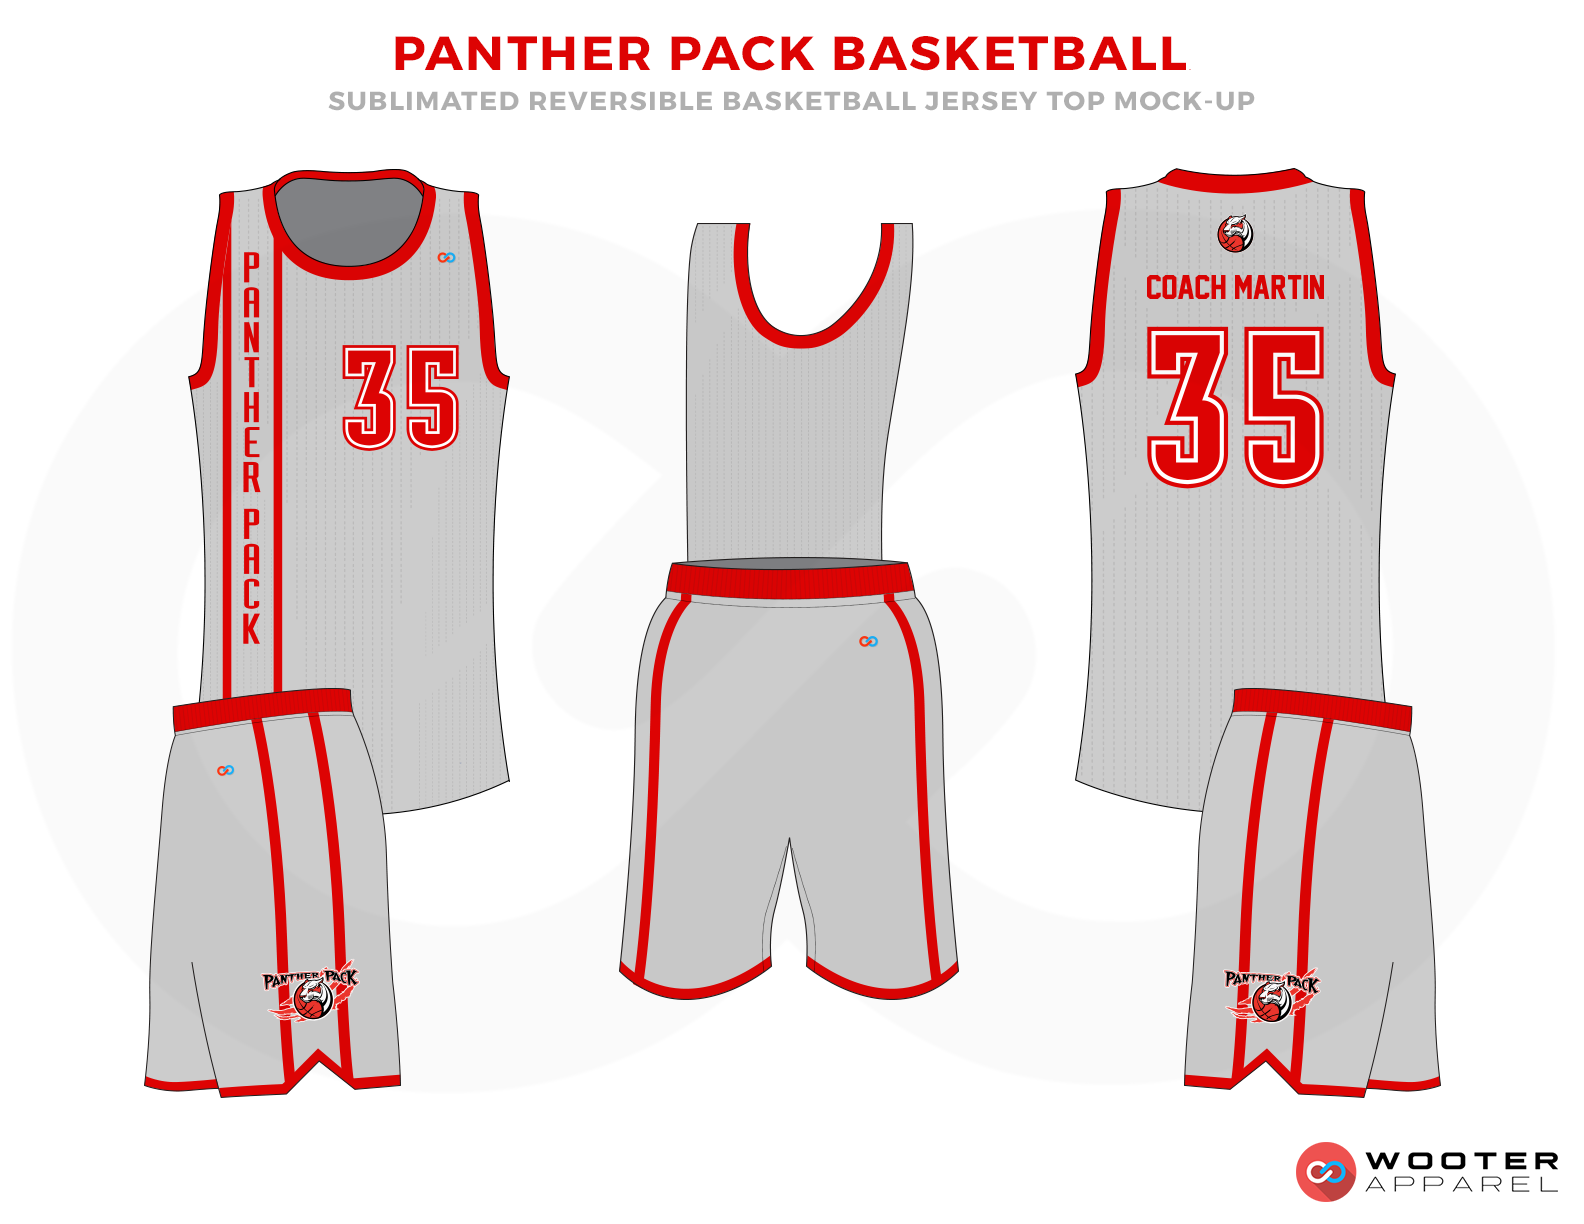 PANTHER PACK BASKETBALL Grey and Red Basketball Uniforms, Jersey and Shorts